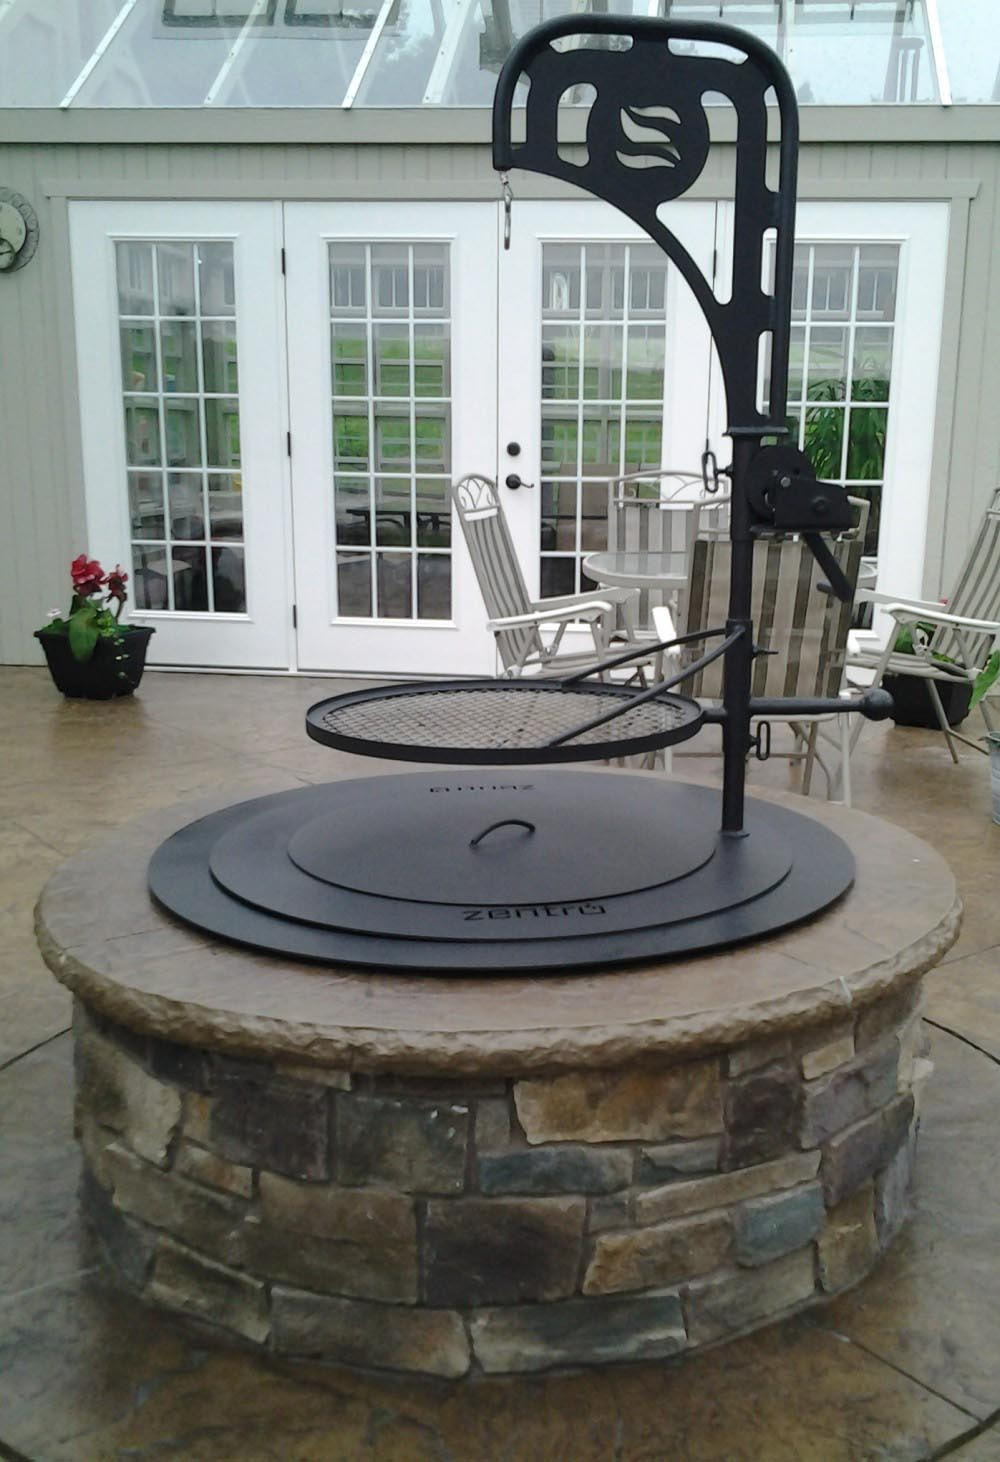 Fire Pit Grill Accessories | Fire Pit Design Ideas